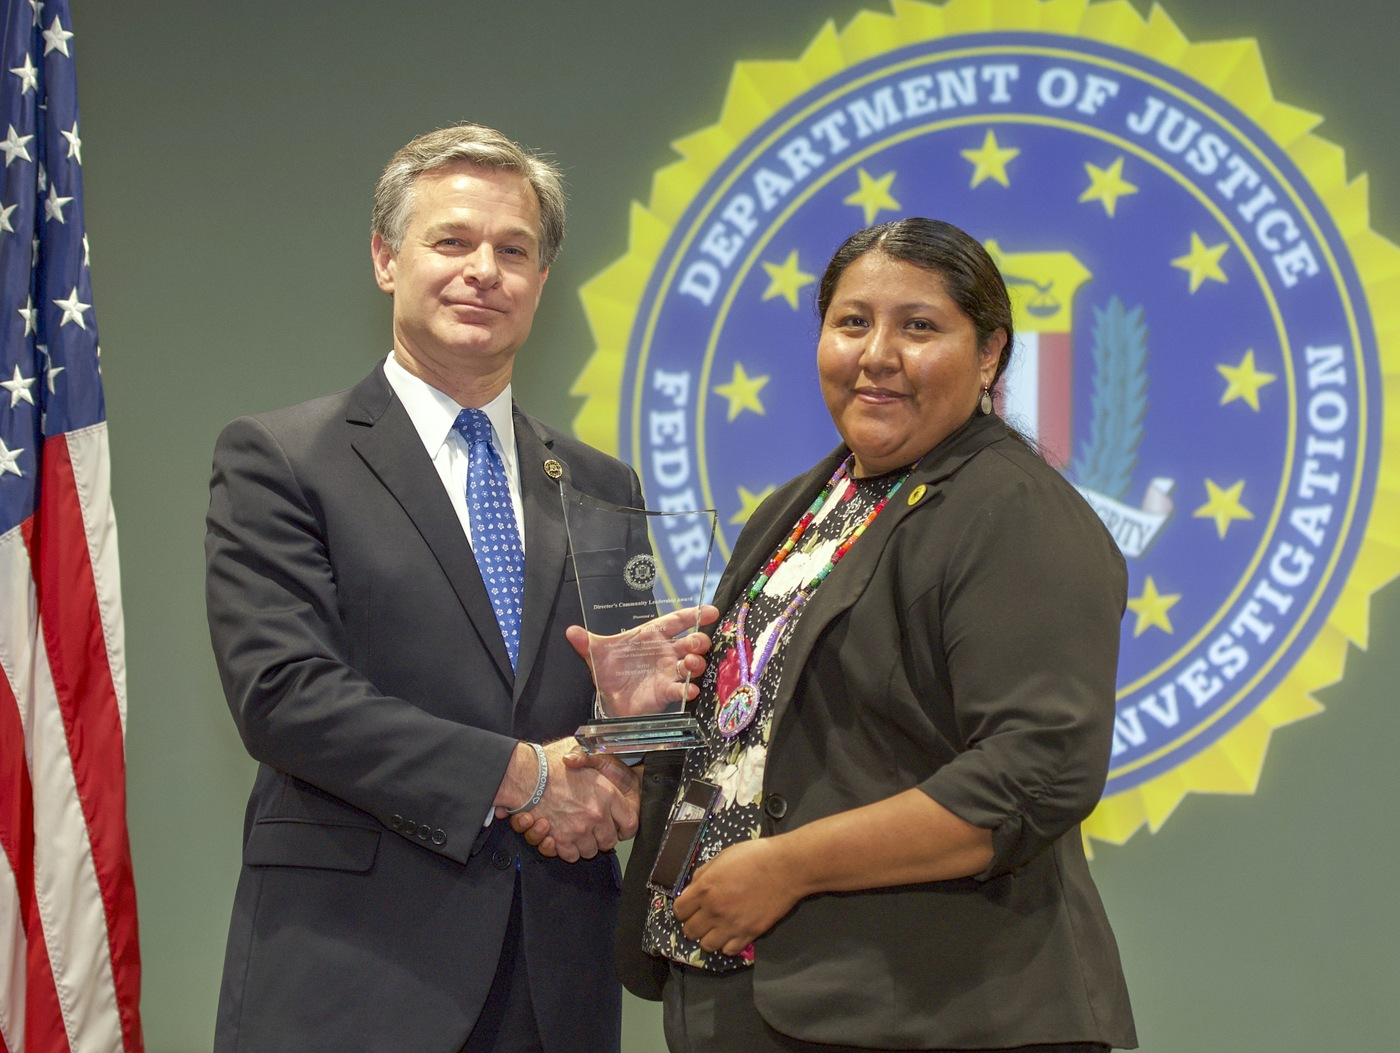 FBI Director Christopher Wray presents Denver Division recipient Rory Tendore with the Director's Community Leadership Award (DCLA) at a ceremony at FBI Headquarters on May 3, 2019.